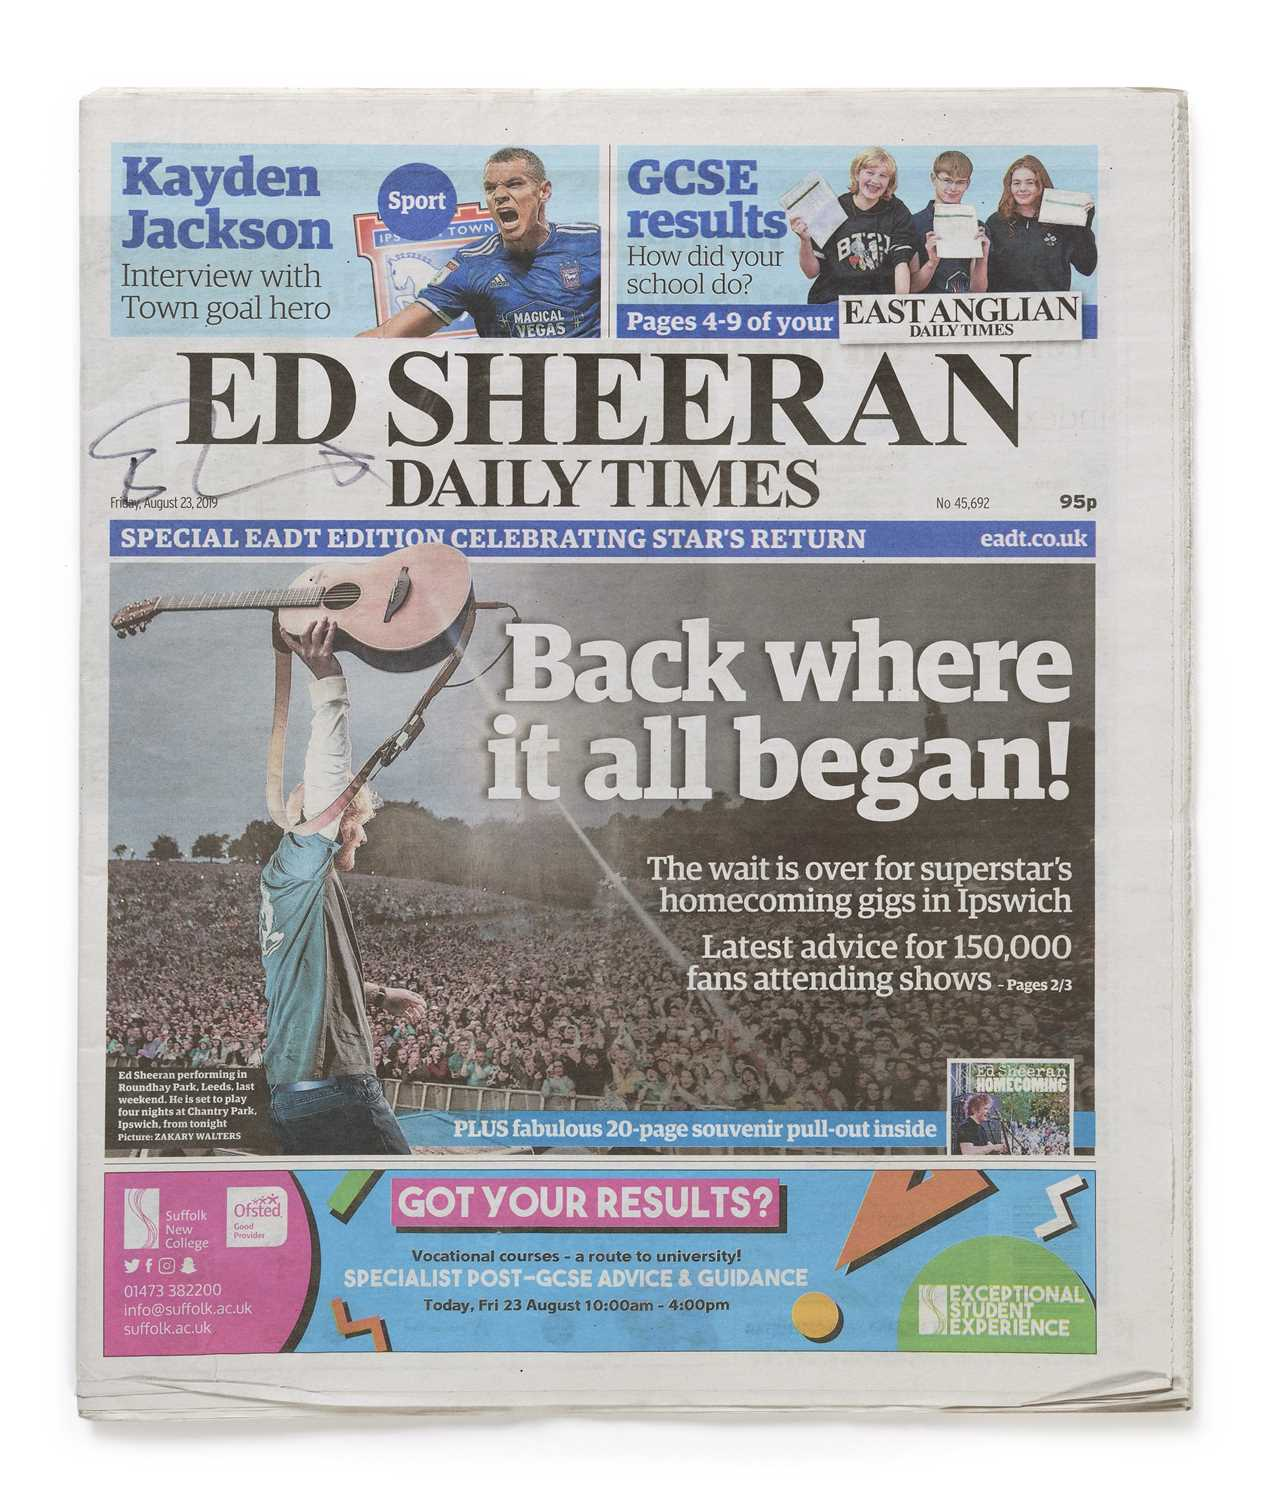 Signed Ed Sheeran Daily Times Newspaper, Friday 23 August 2019 An original copy of The East